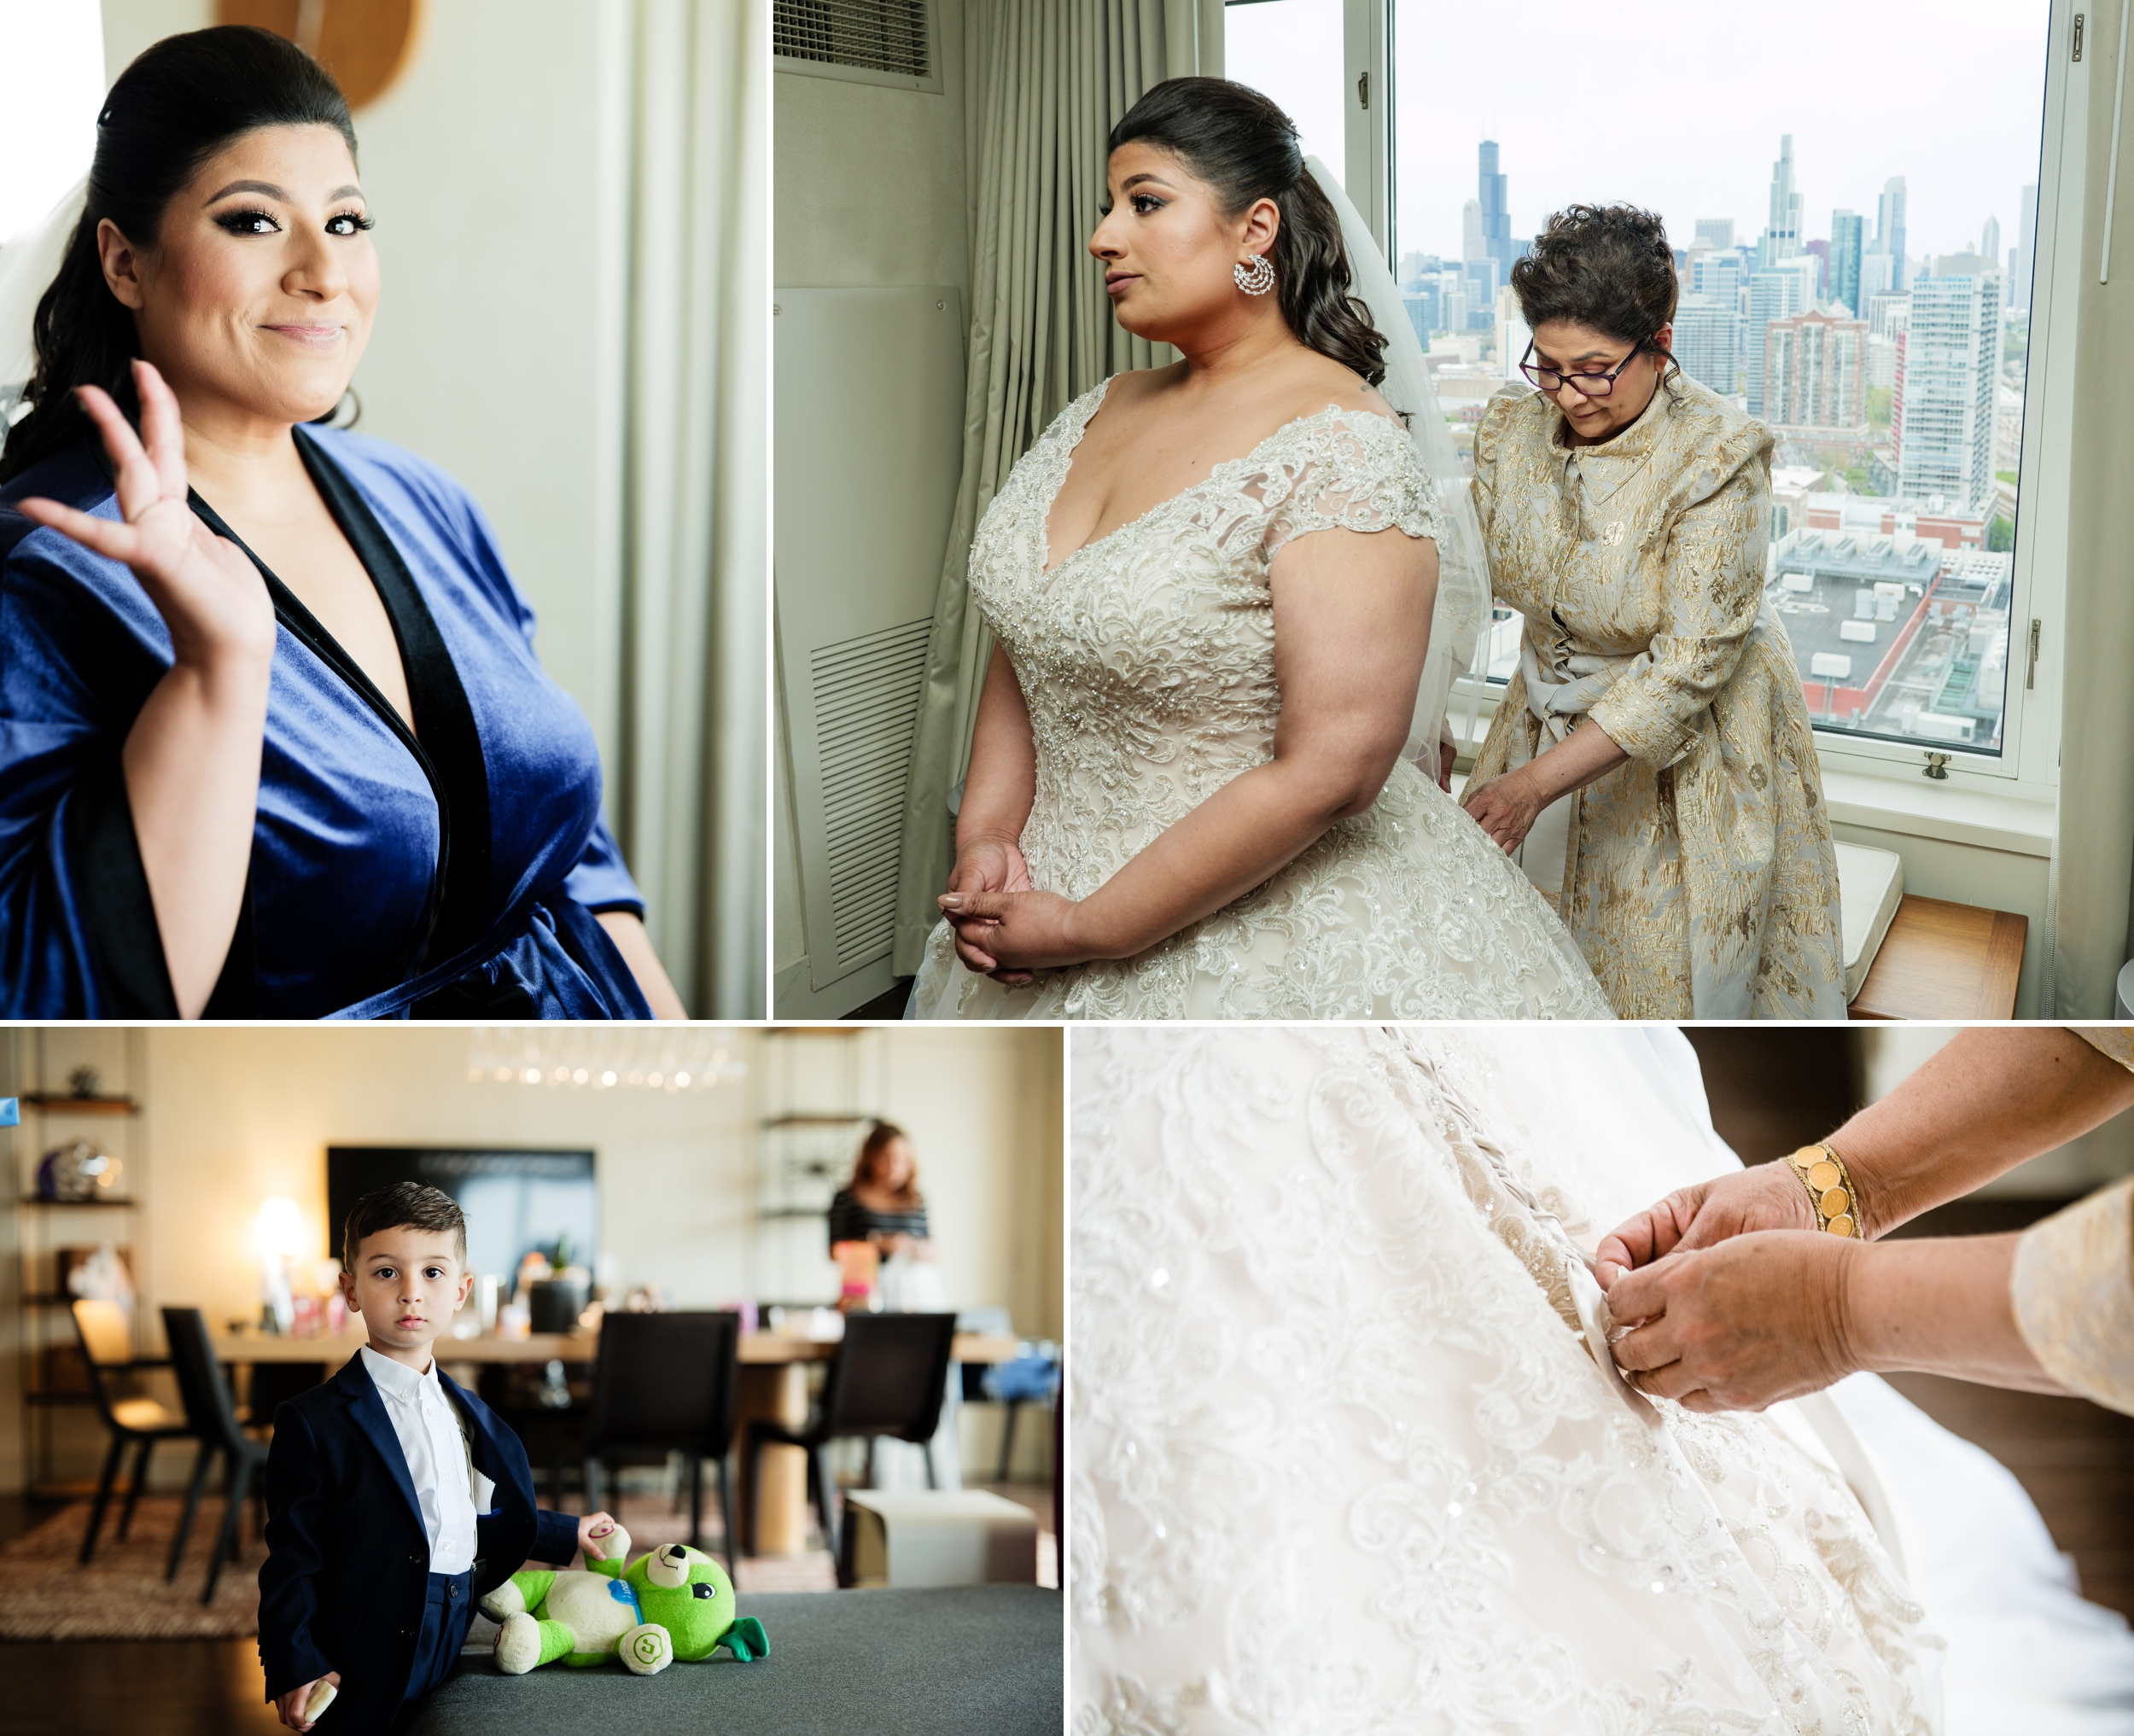 The bride and friends get ready for her big day at Hyatt Regency McCormick Place hotel.